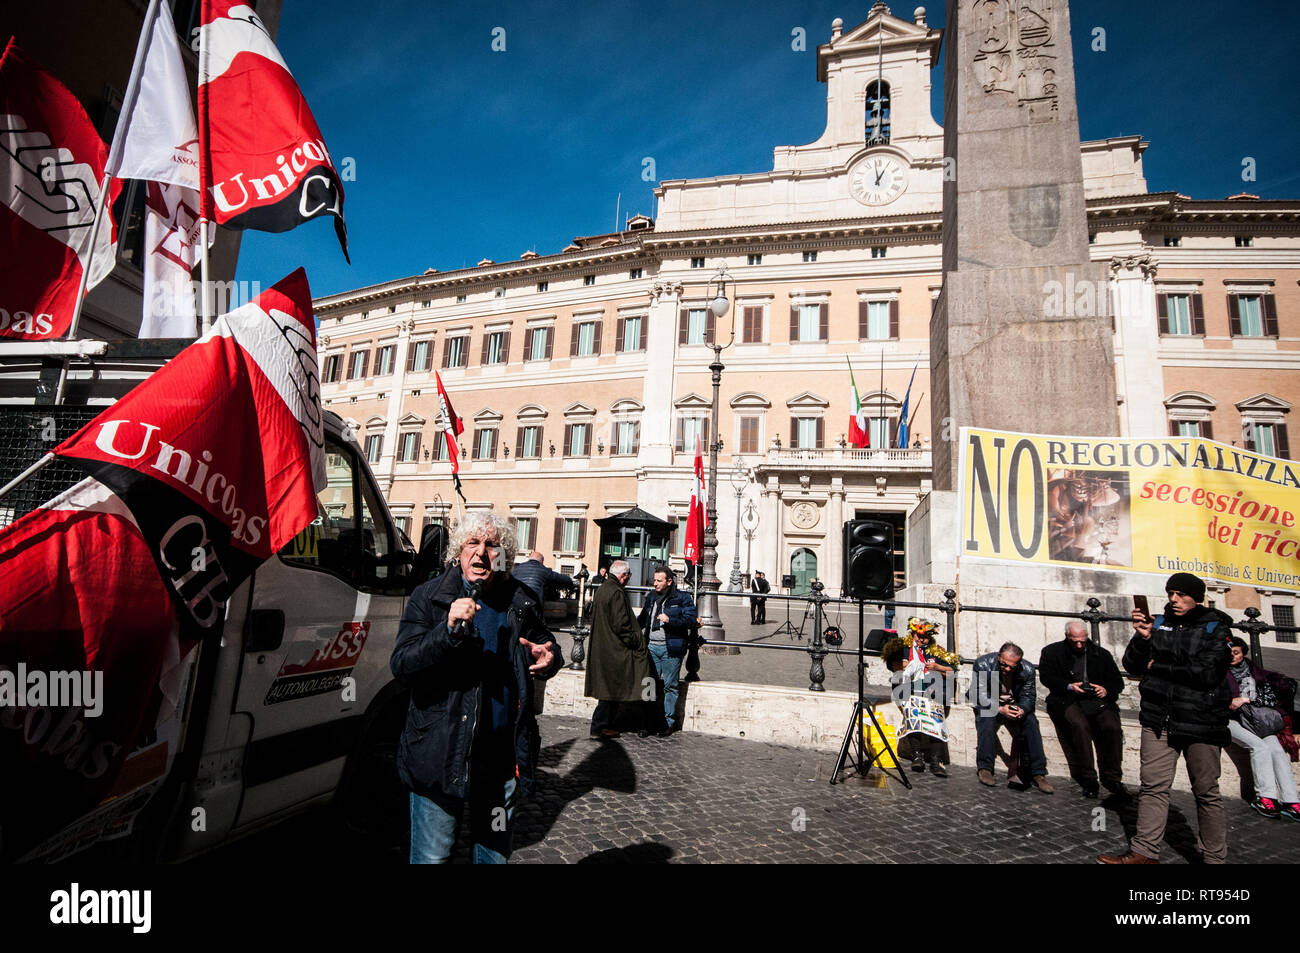 Rome, Italy. 27th Feb, 2019. Stefano D'Errico, National Secretary of Unicobas School and University during the protest, in Montecitorio square against the regionalization, the process of differentiated autonomy. Credit: Andrea Ronchini/Pacific Press/Alamy Live News - Stock Image